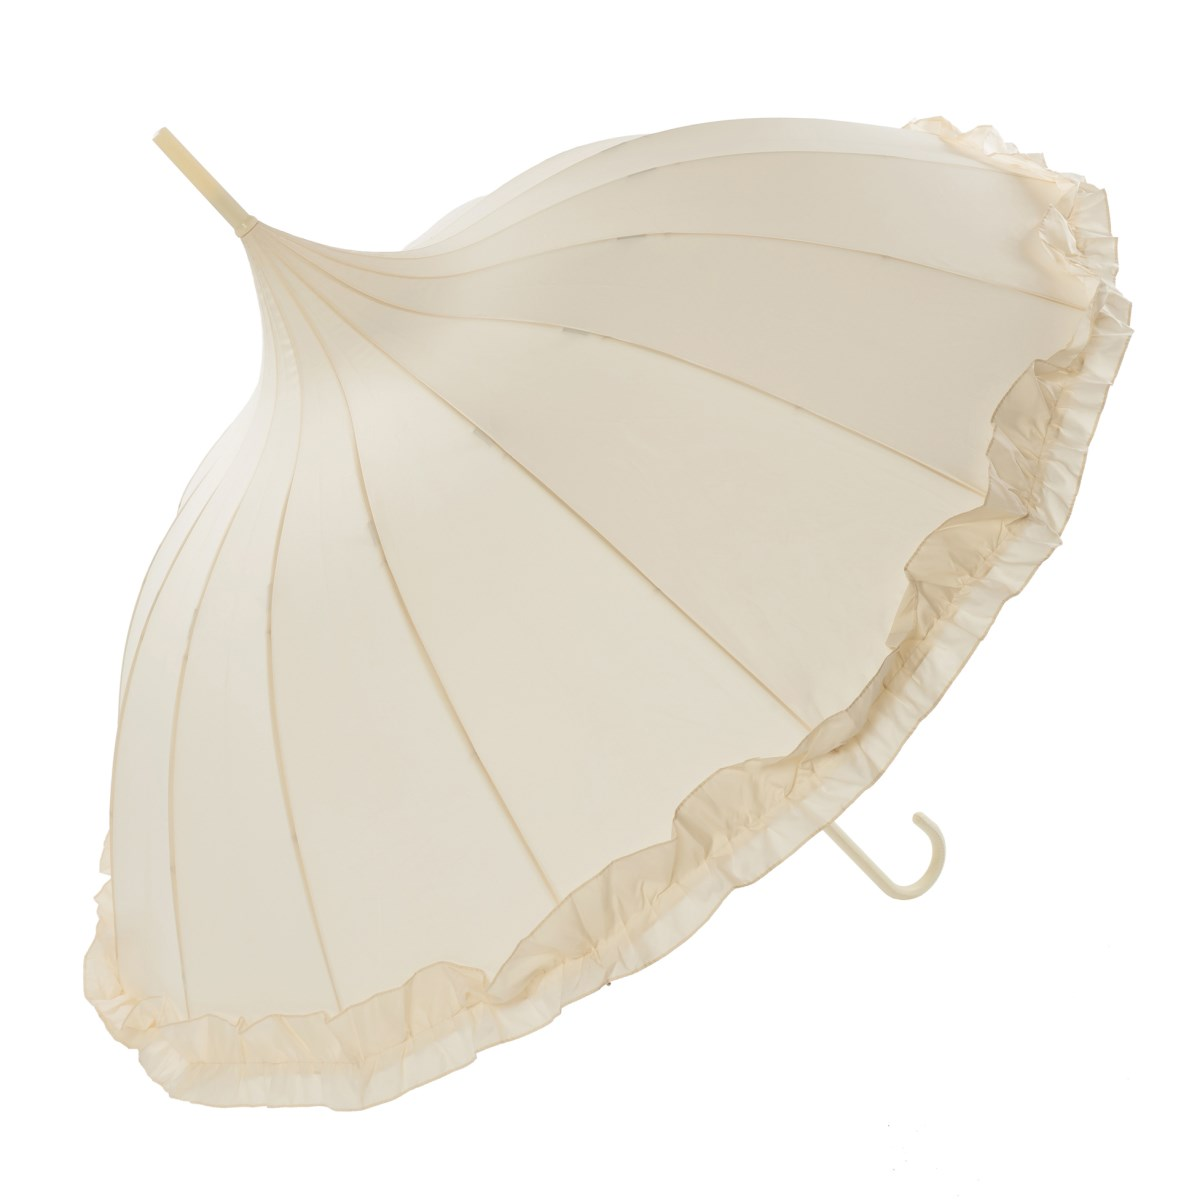 Oriental Ivory Ornate Pagoda Occasion Umbrella with Frilled Border (17003/IVO)